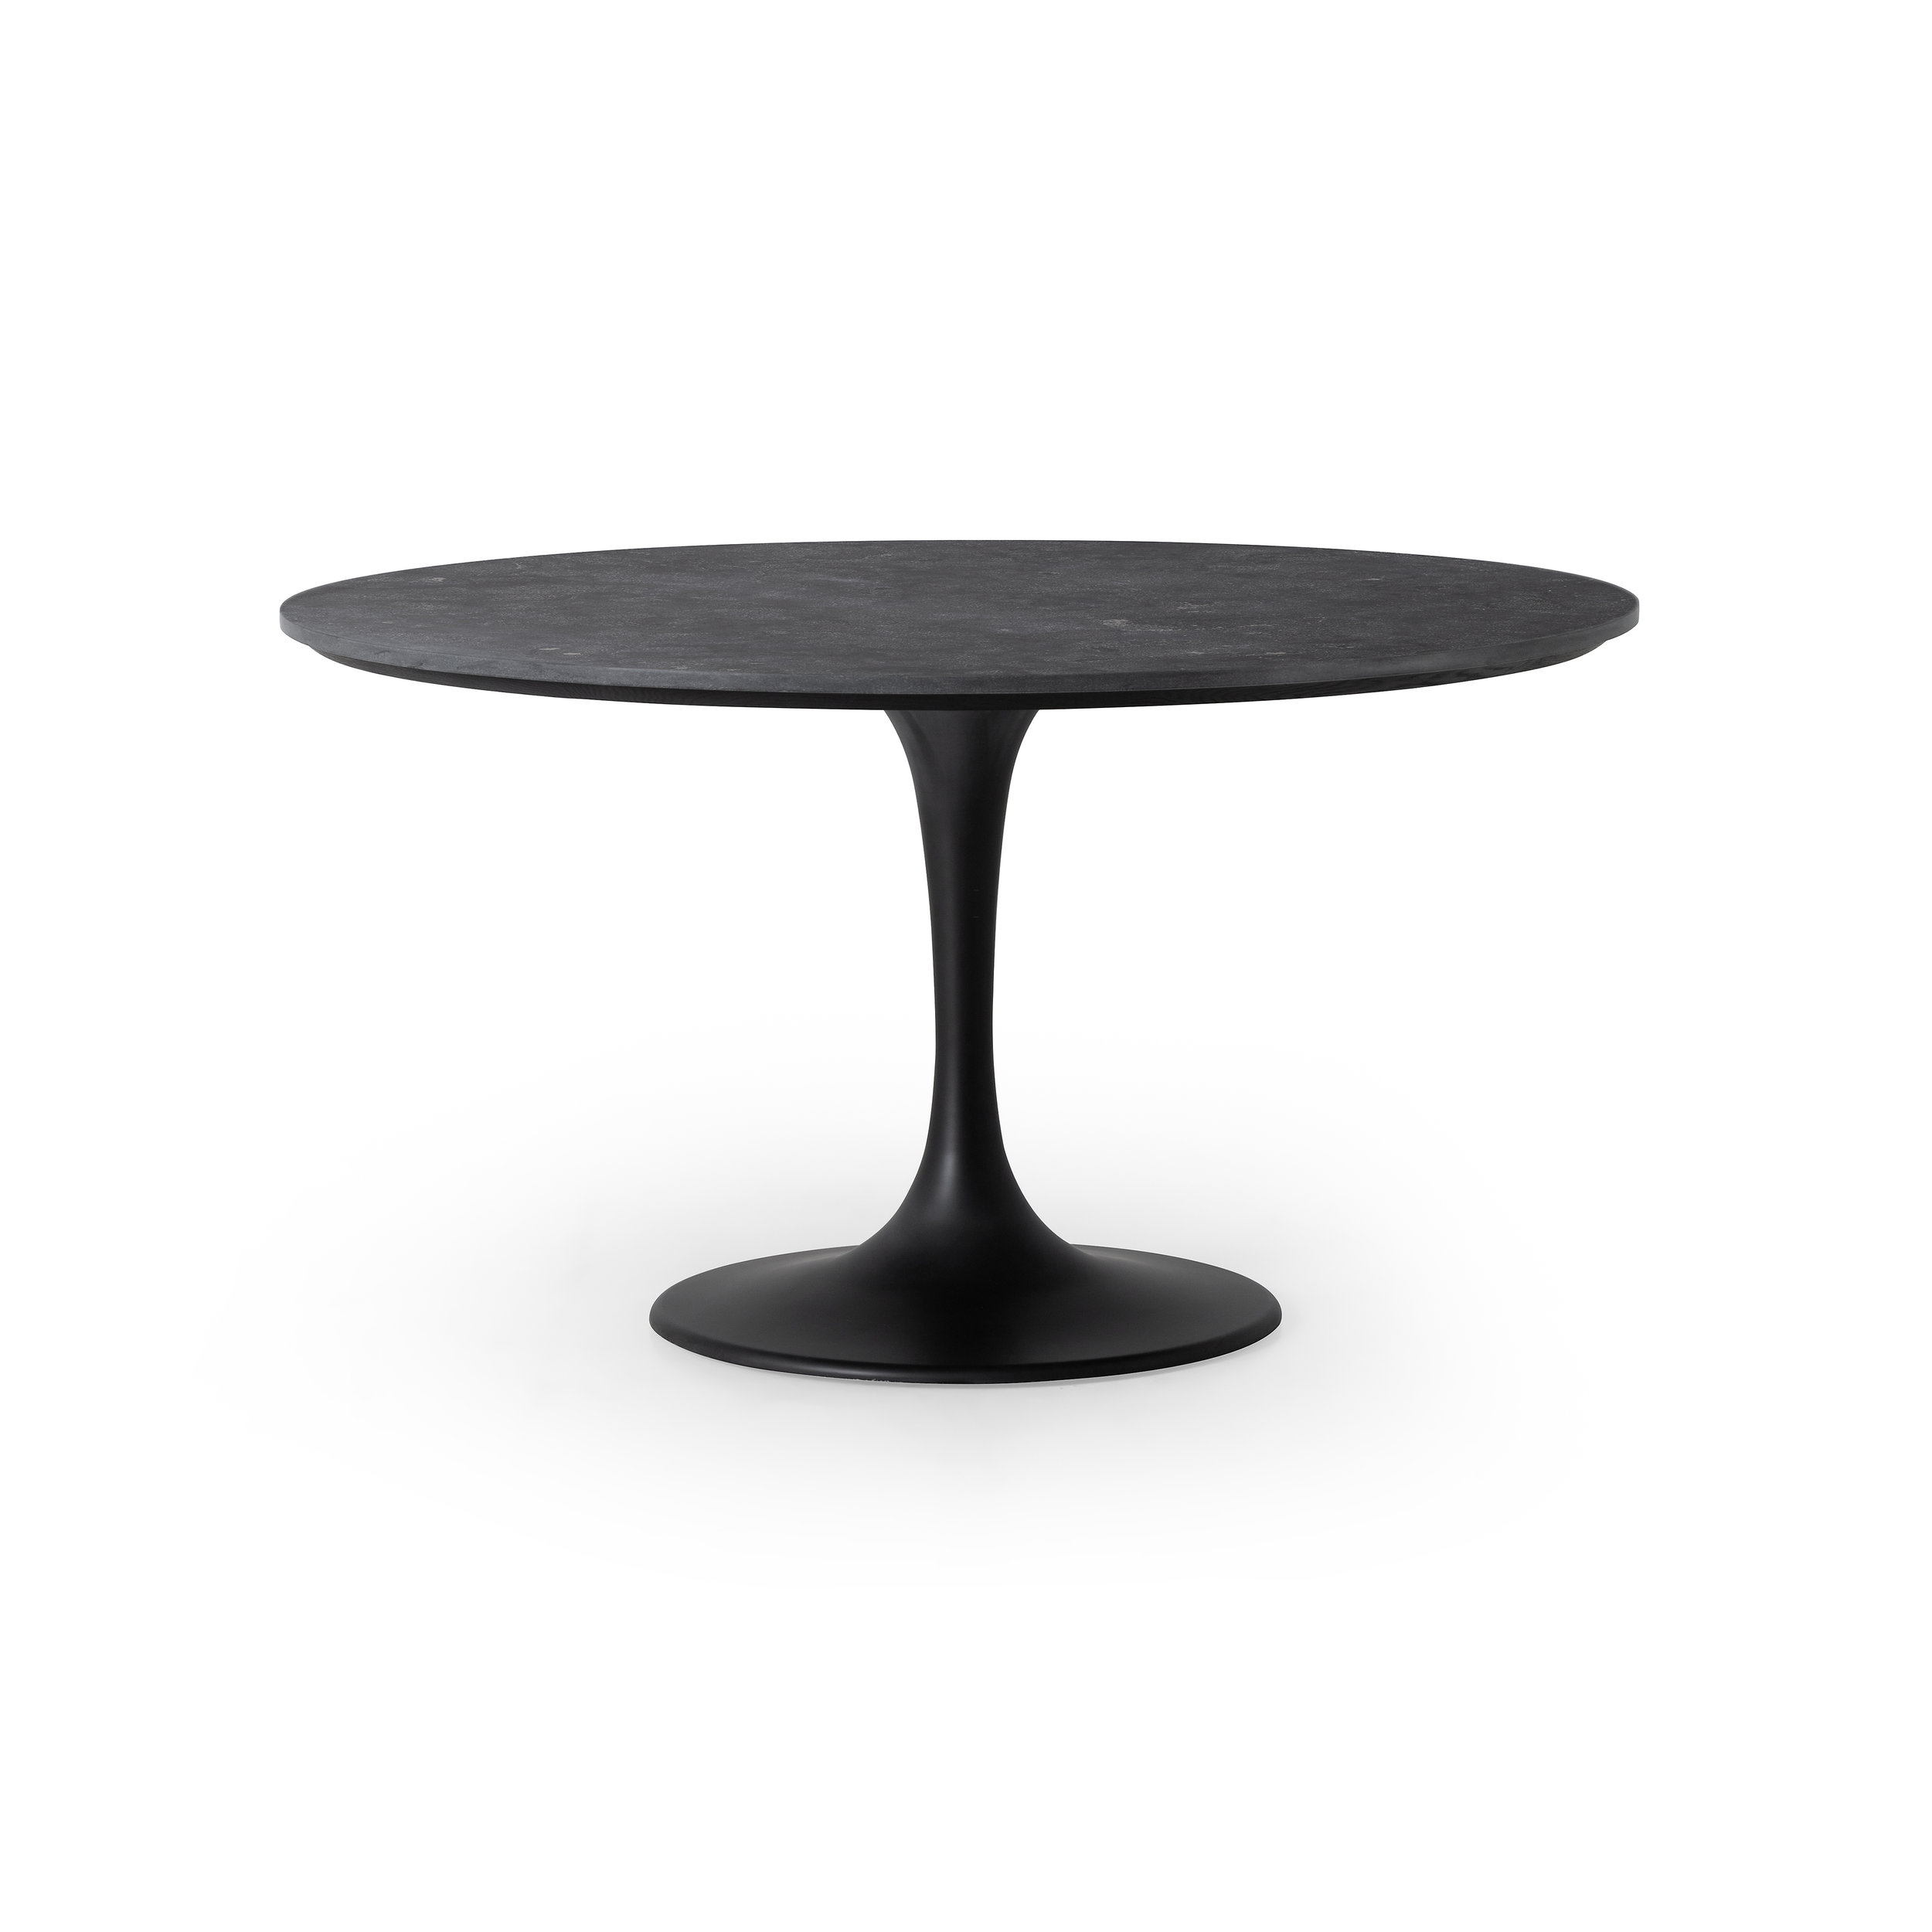 Powell Dining Table with Bluestone    |  The lovely and feminine tulip frame of this table is blended seamlessly with a rustic black iron finish to create a table that is both sweet and serious.